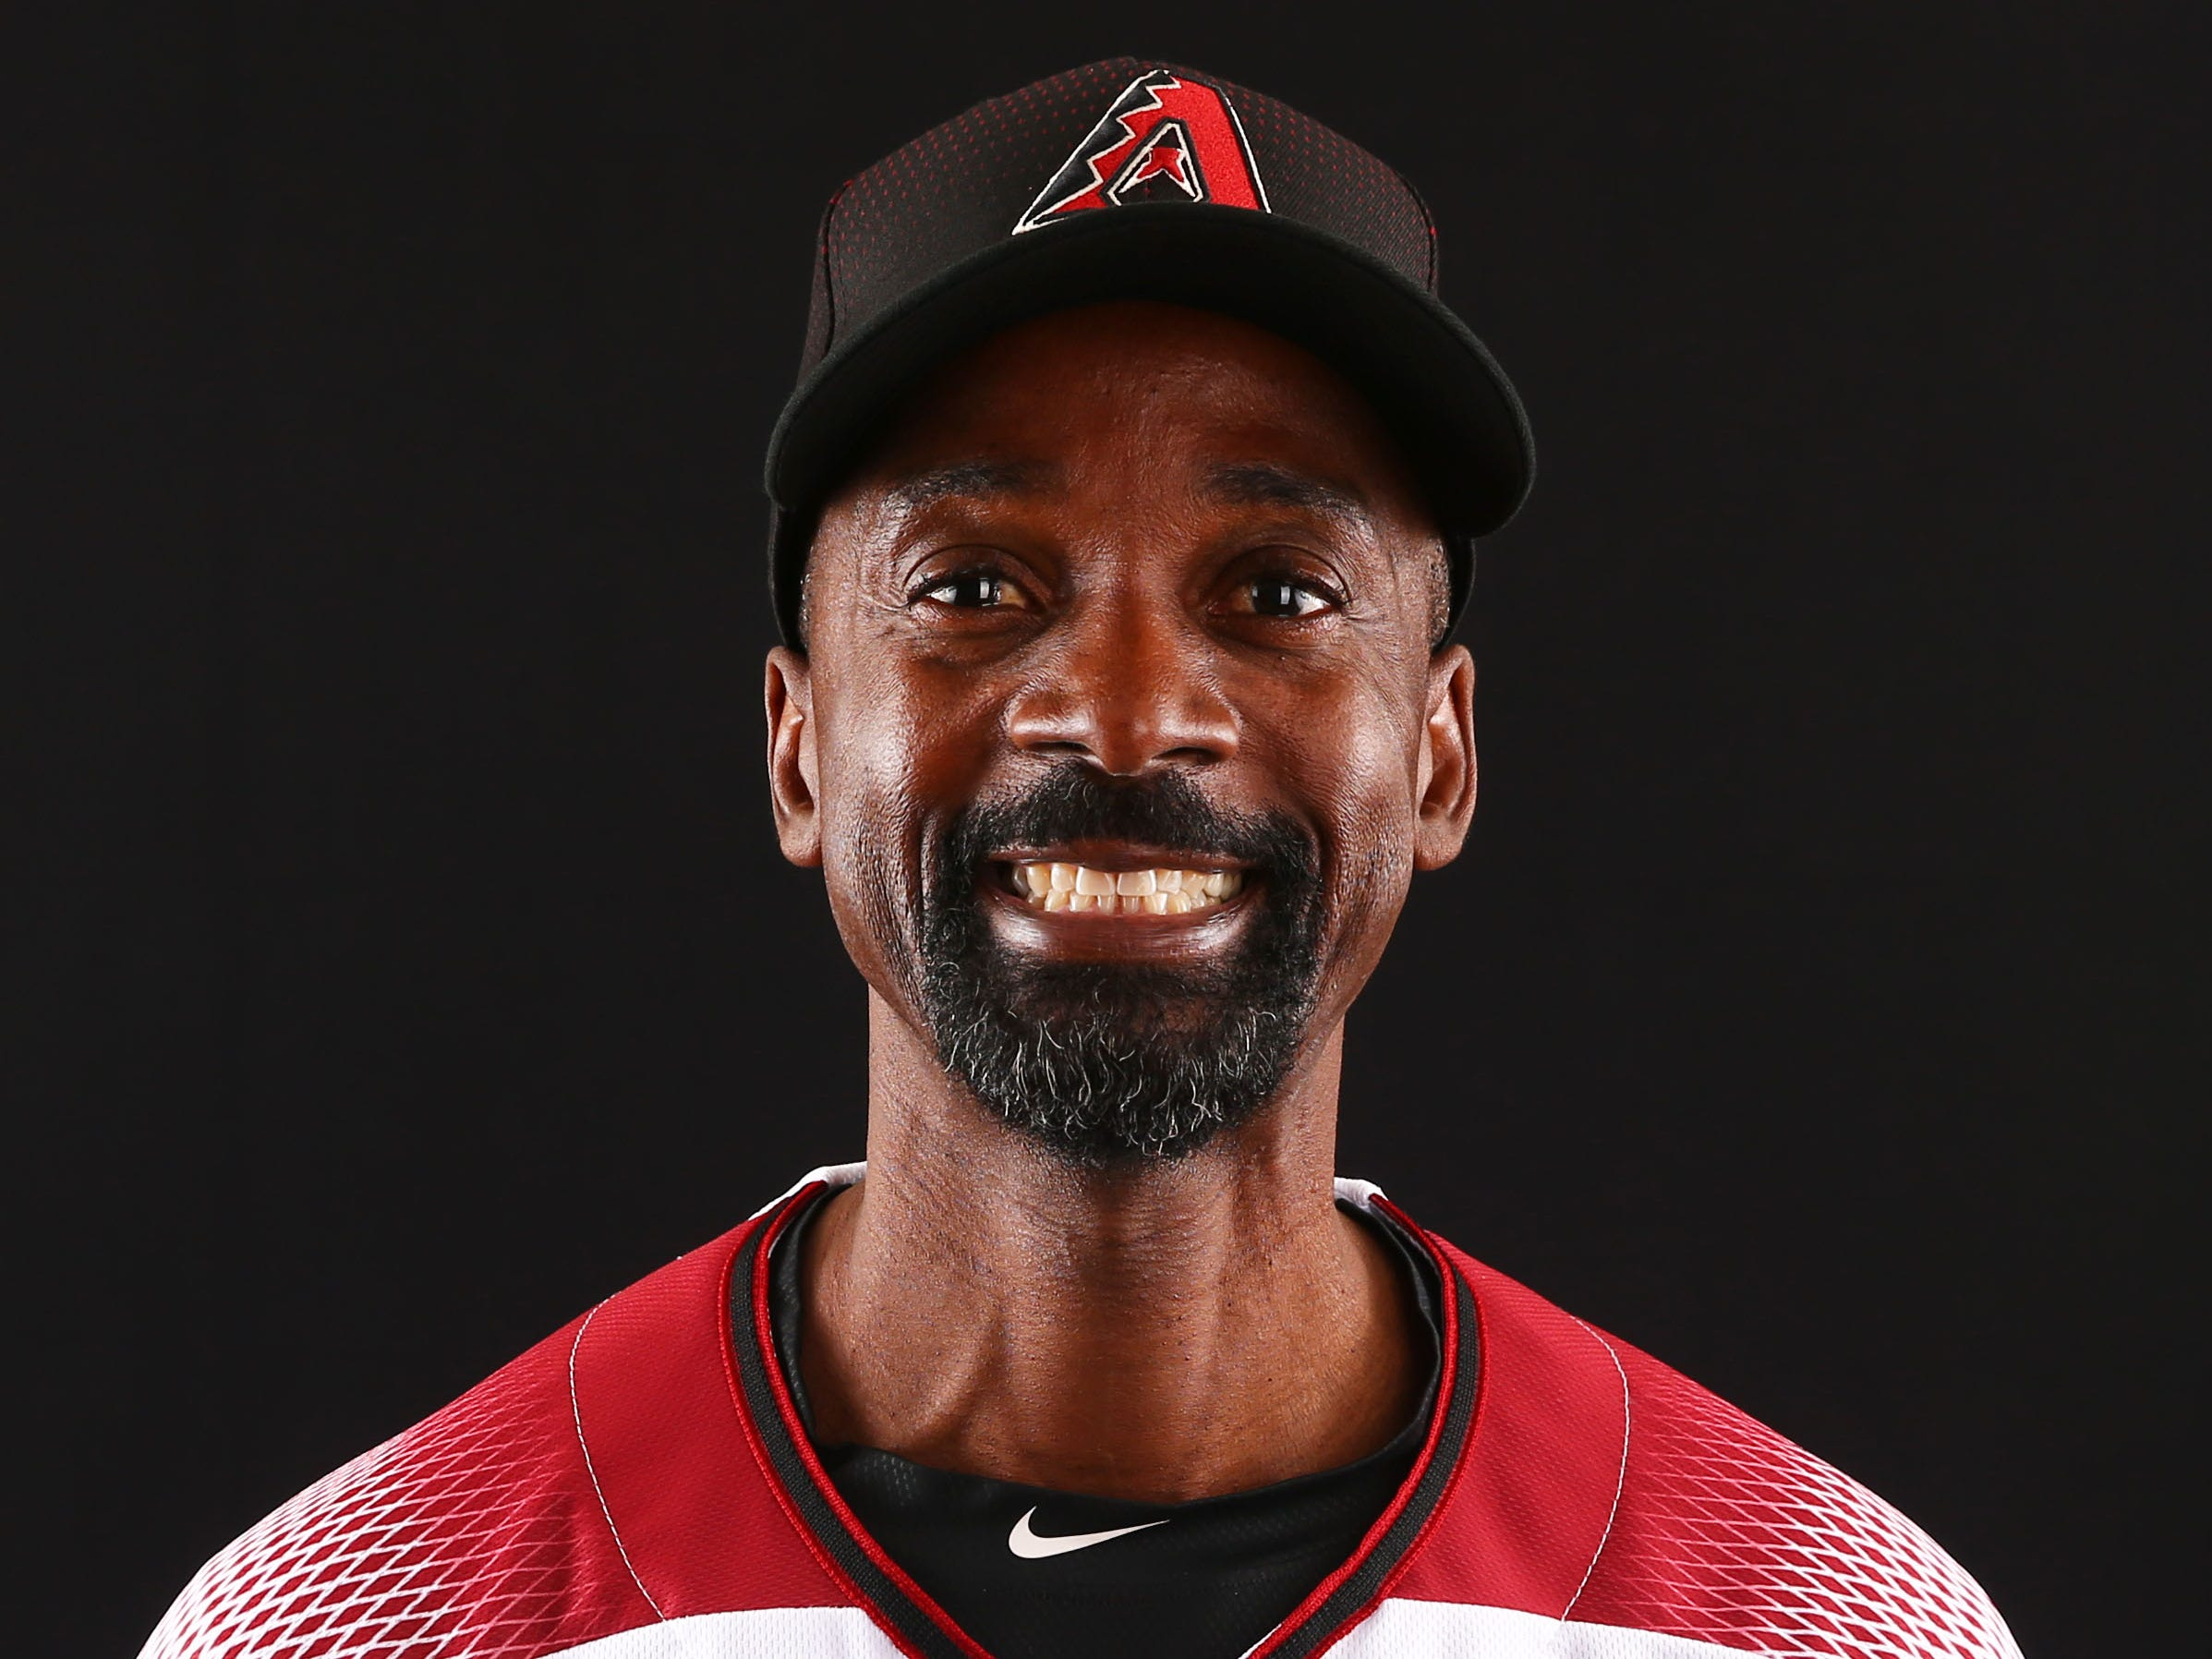 Darnell Coles of the Arizona Diamondbacks poses for a photo during the annual Spring Training Photo Day on Feb. 20 at Salt River Fields in Scottsdale, Ariz.